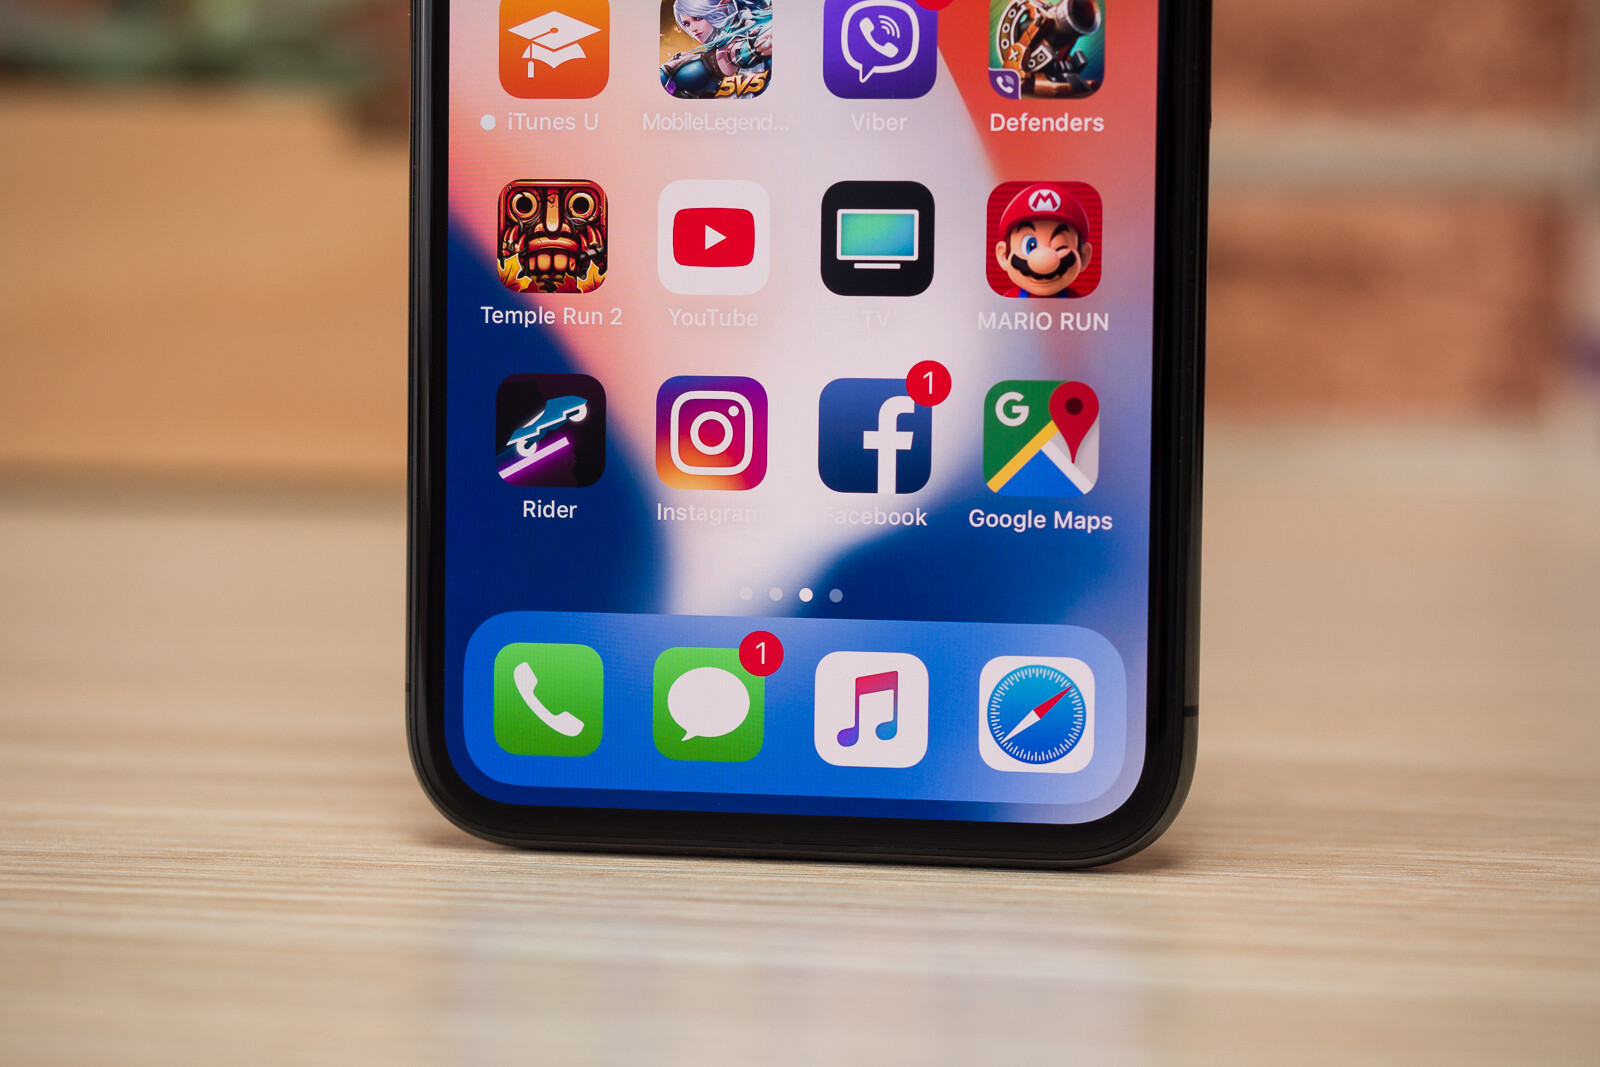 Apple Might Release Two iPhones With 5G Support in 2020